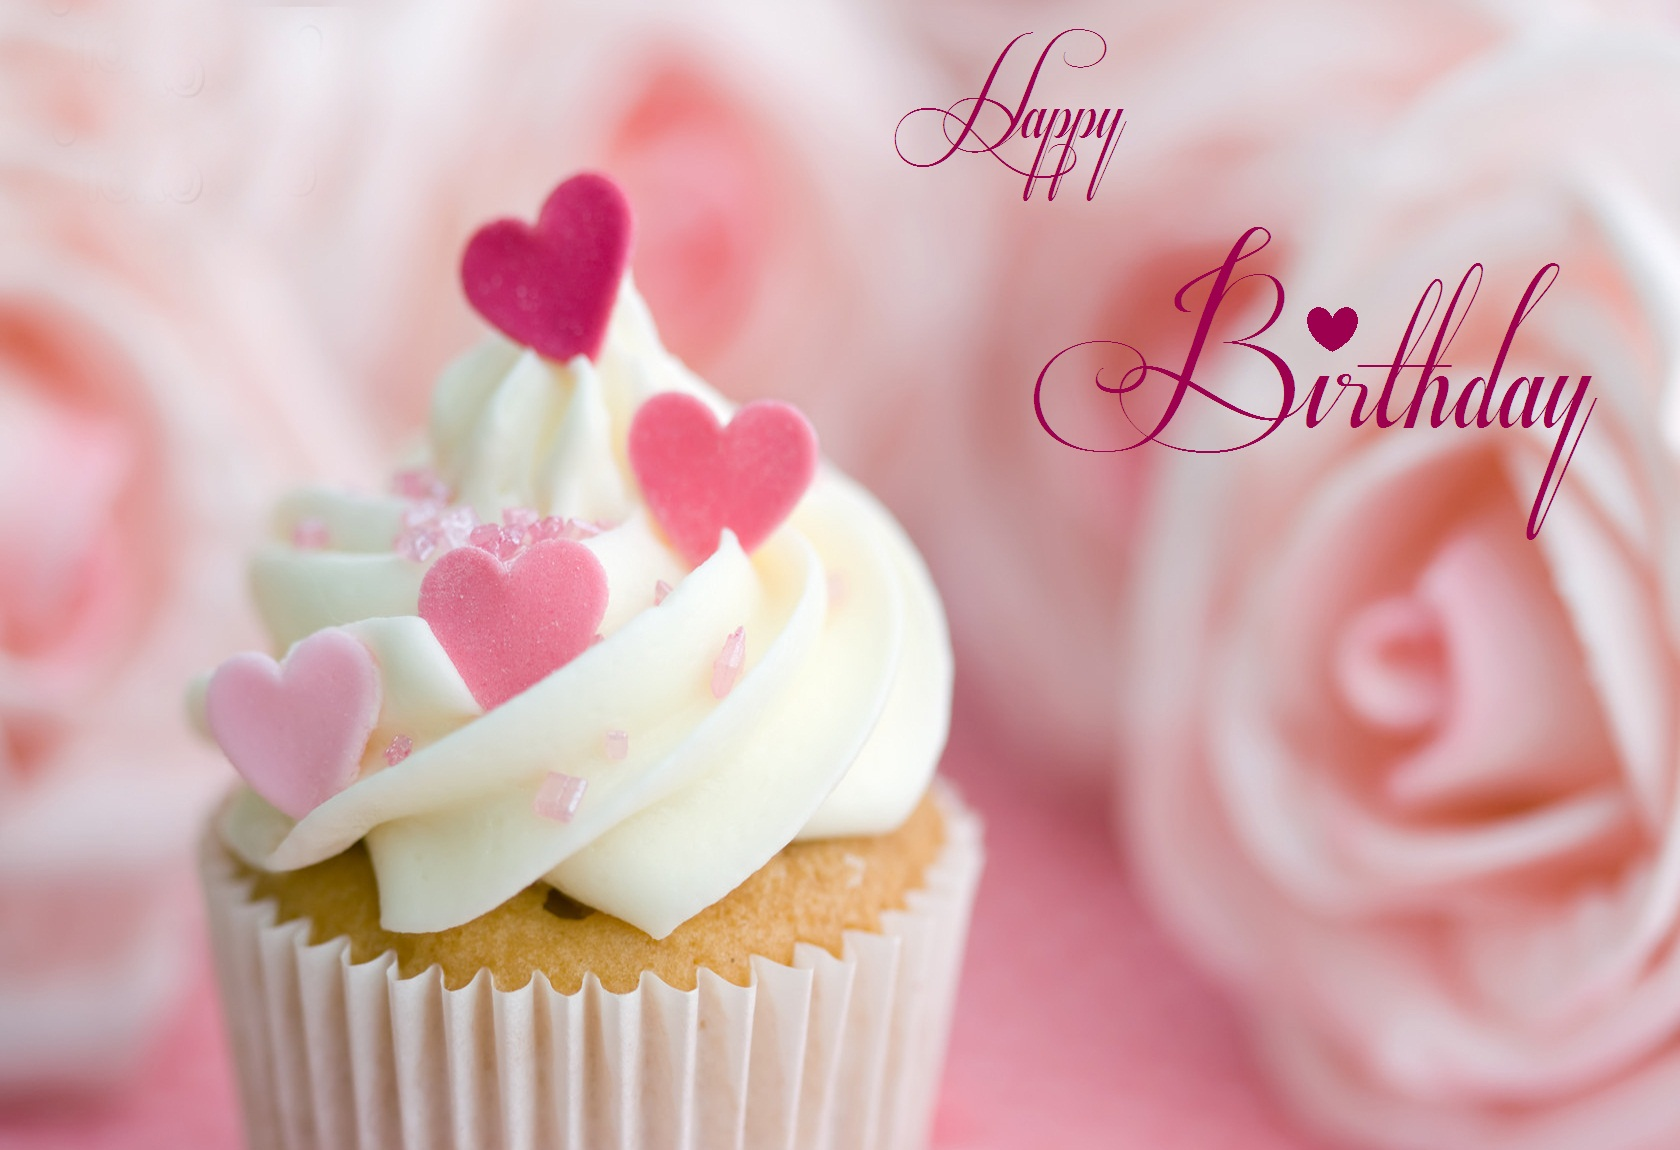 birthday greetings wallpaper ; happy-birthday-wishes-wallpaper-quotes-pics-images-pictures-photos-11